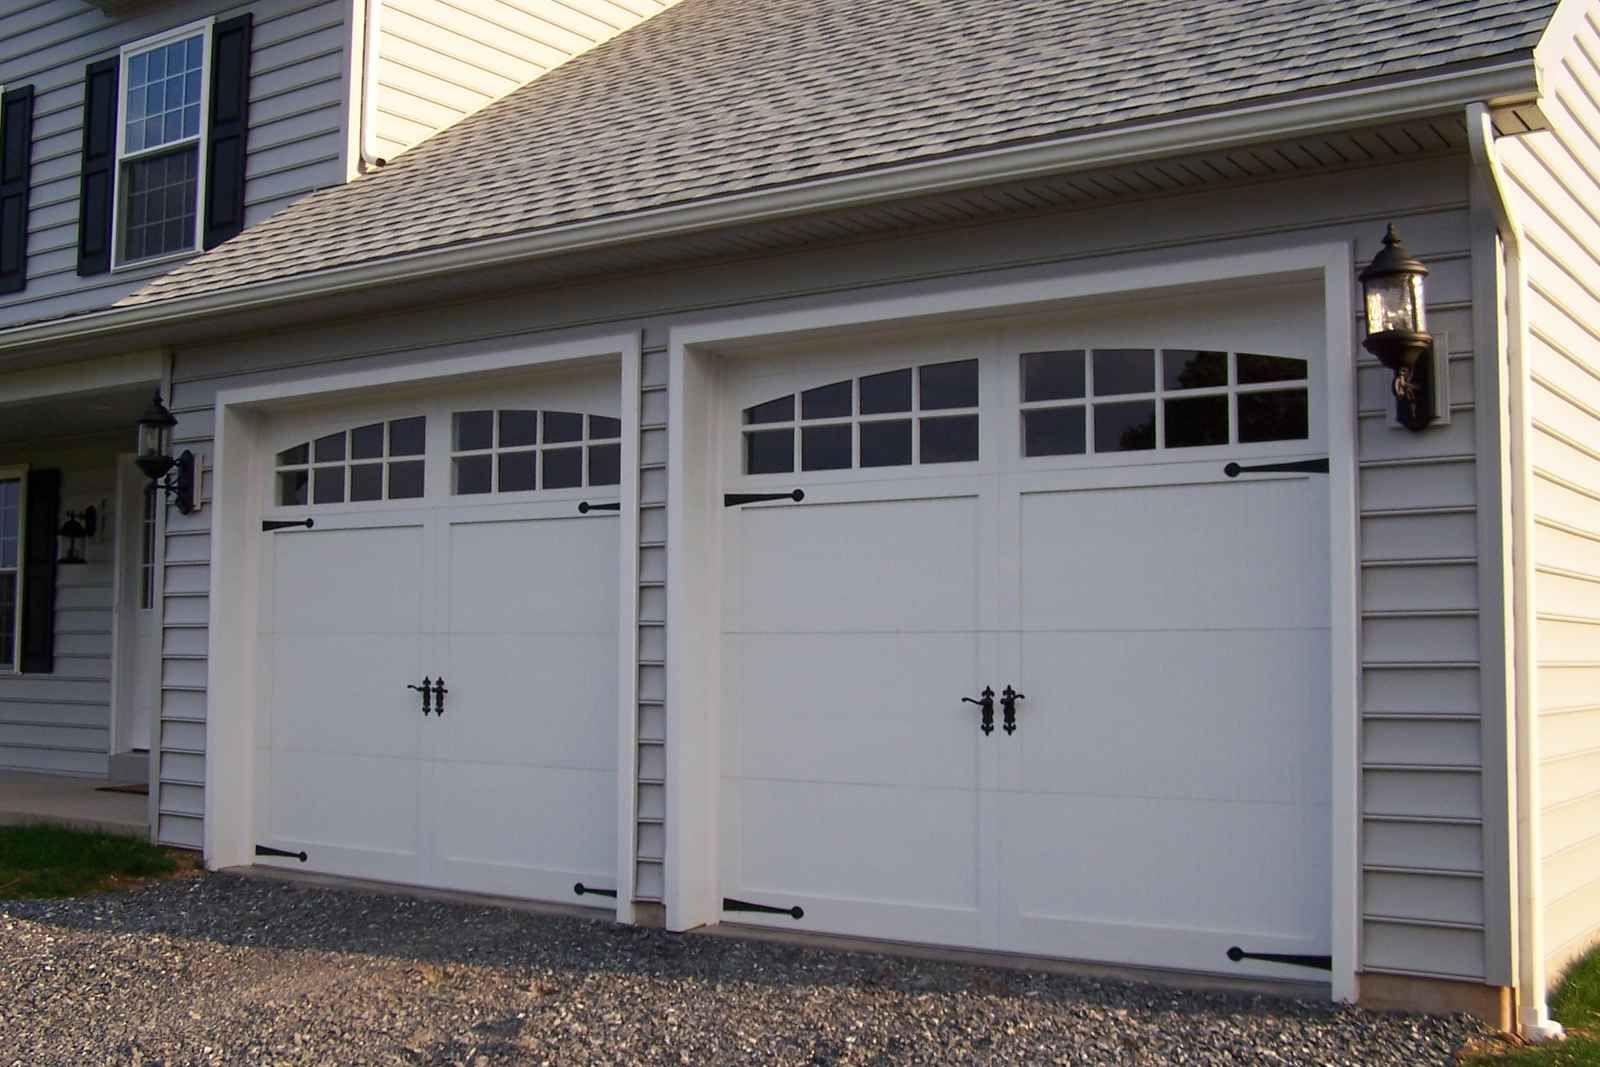 Clopay Garage Door Long Panel With Arched Vertical In Chocolate Finish To Include Straps And H Garage Doors Overhead Garage Door Carriage Style Garage Doors